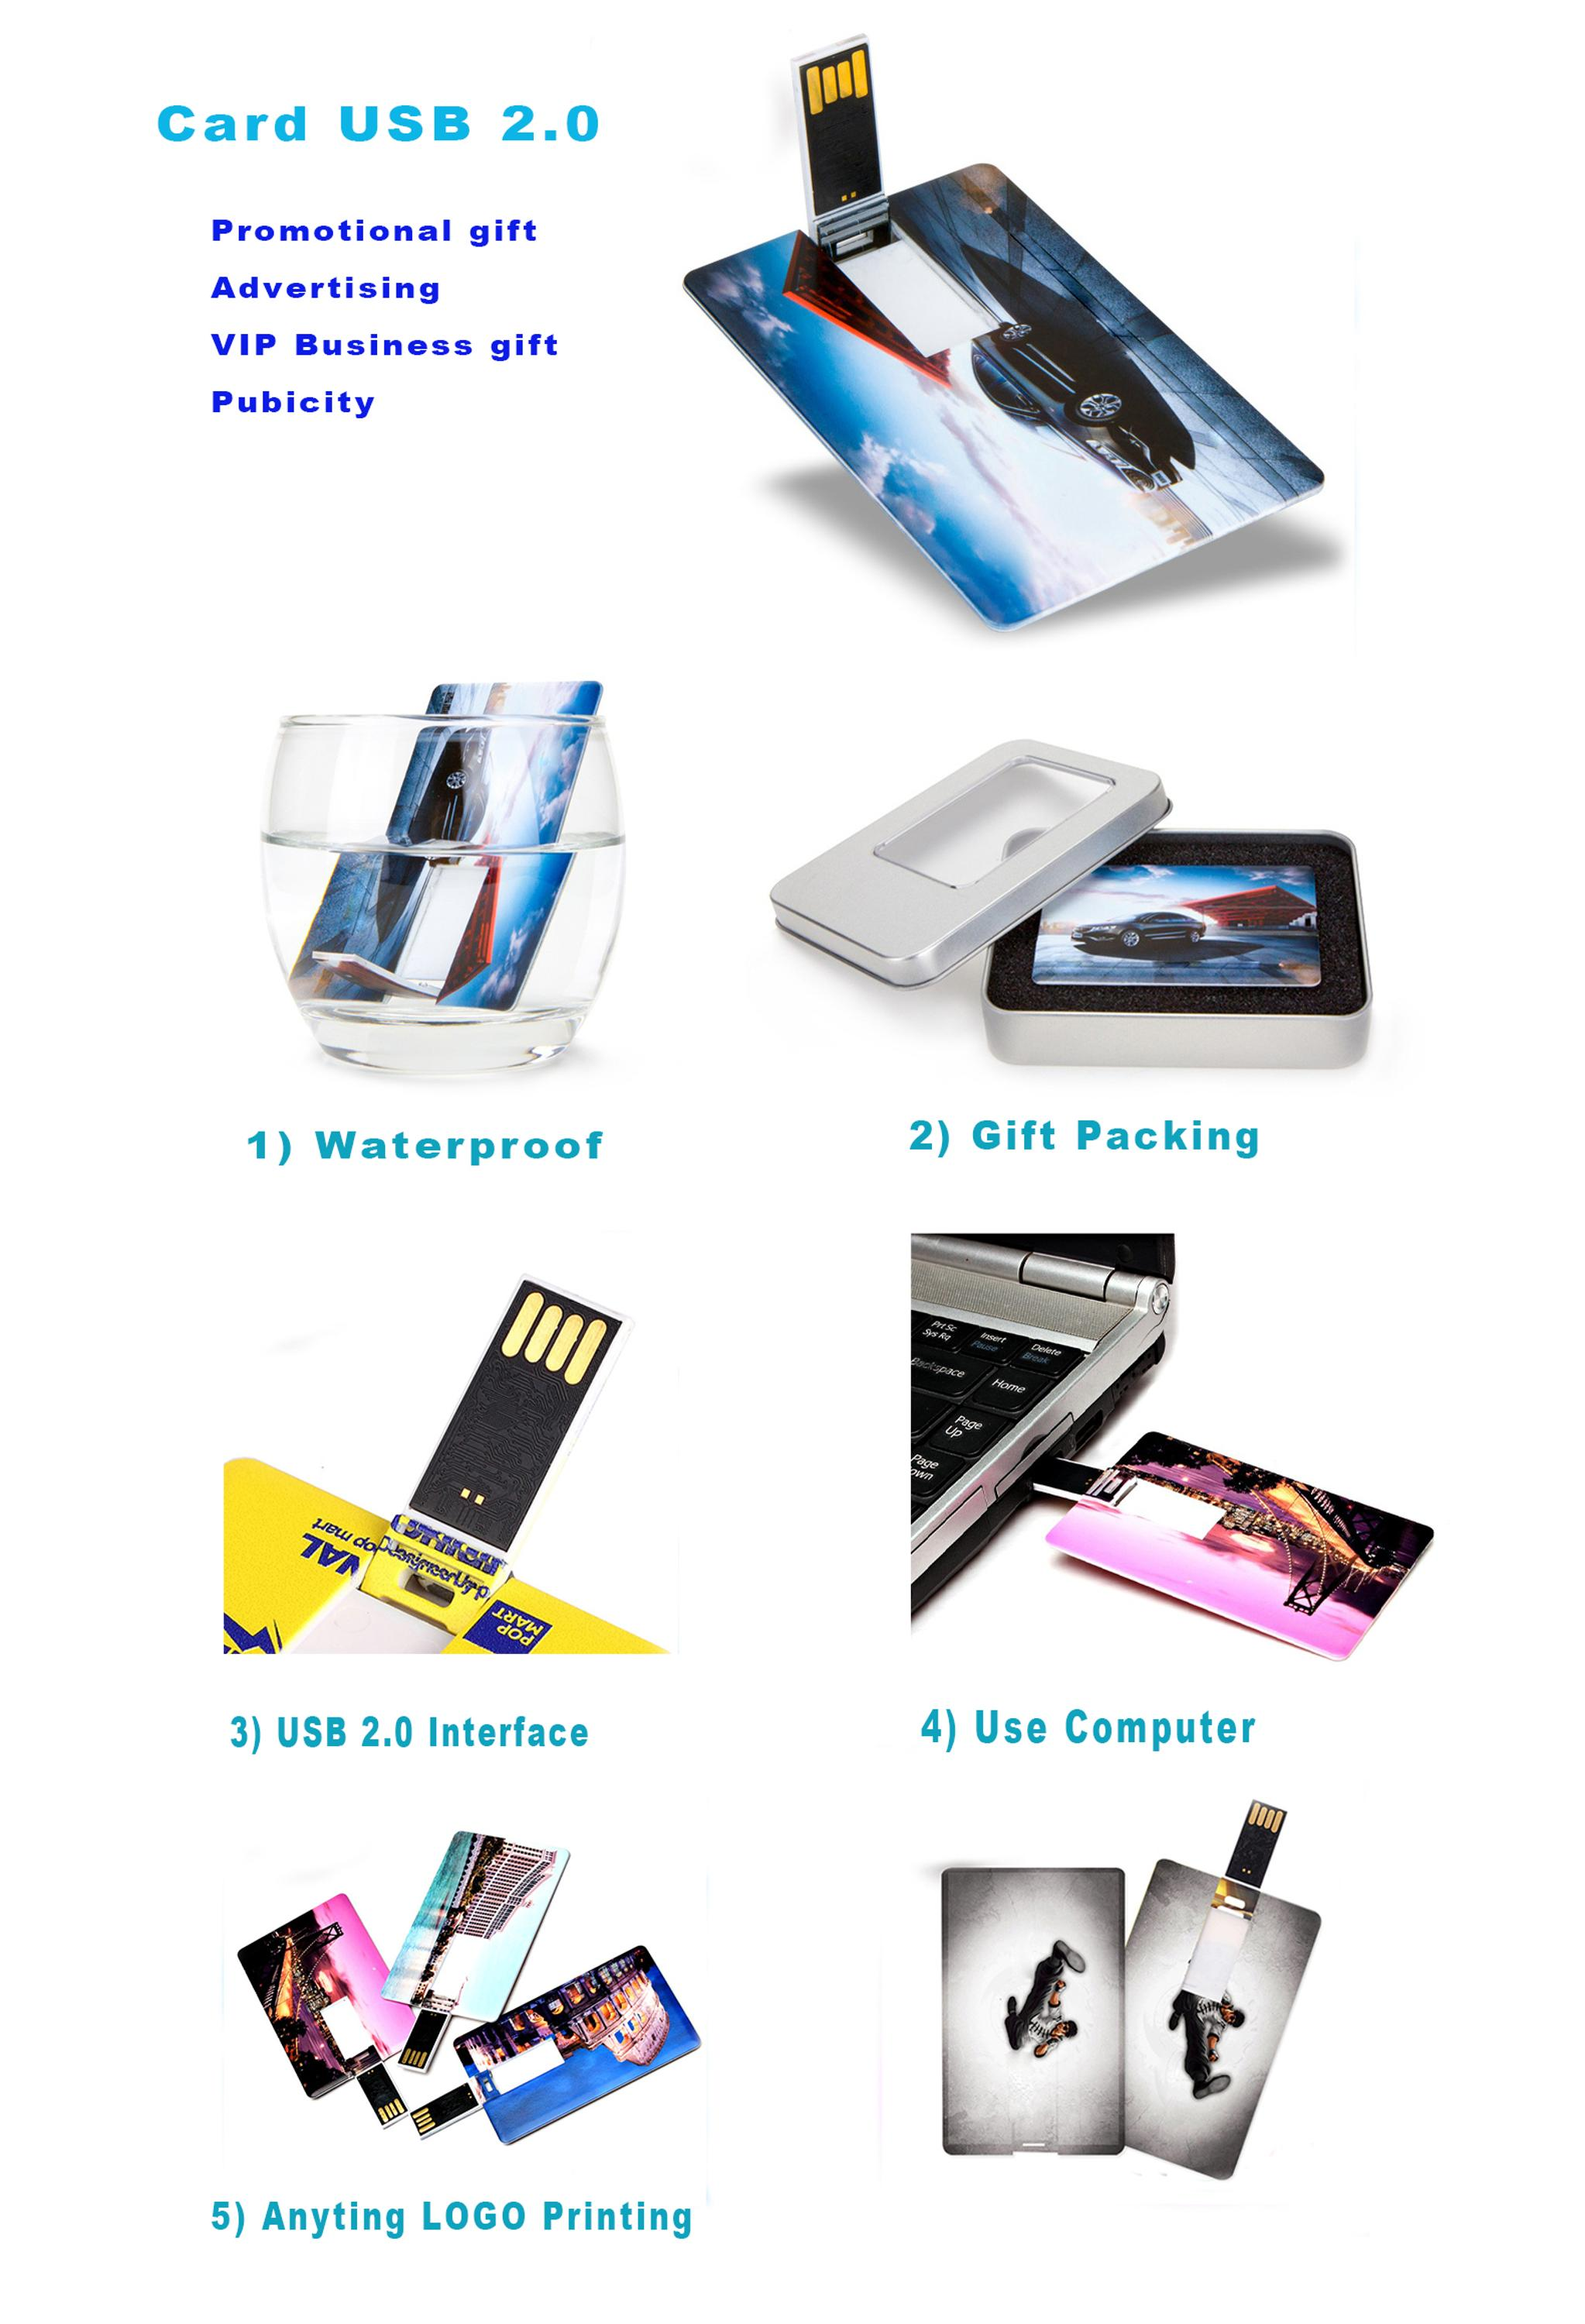 Factory Provide name card usb drive credit card usb business card usb Model JEC-032